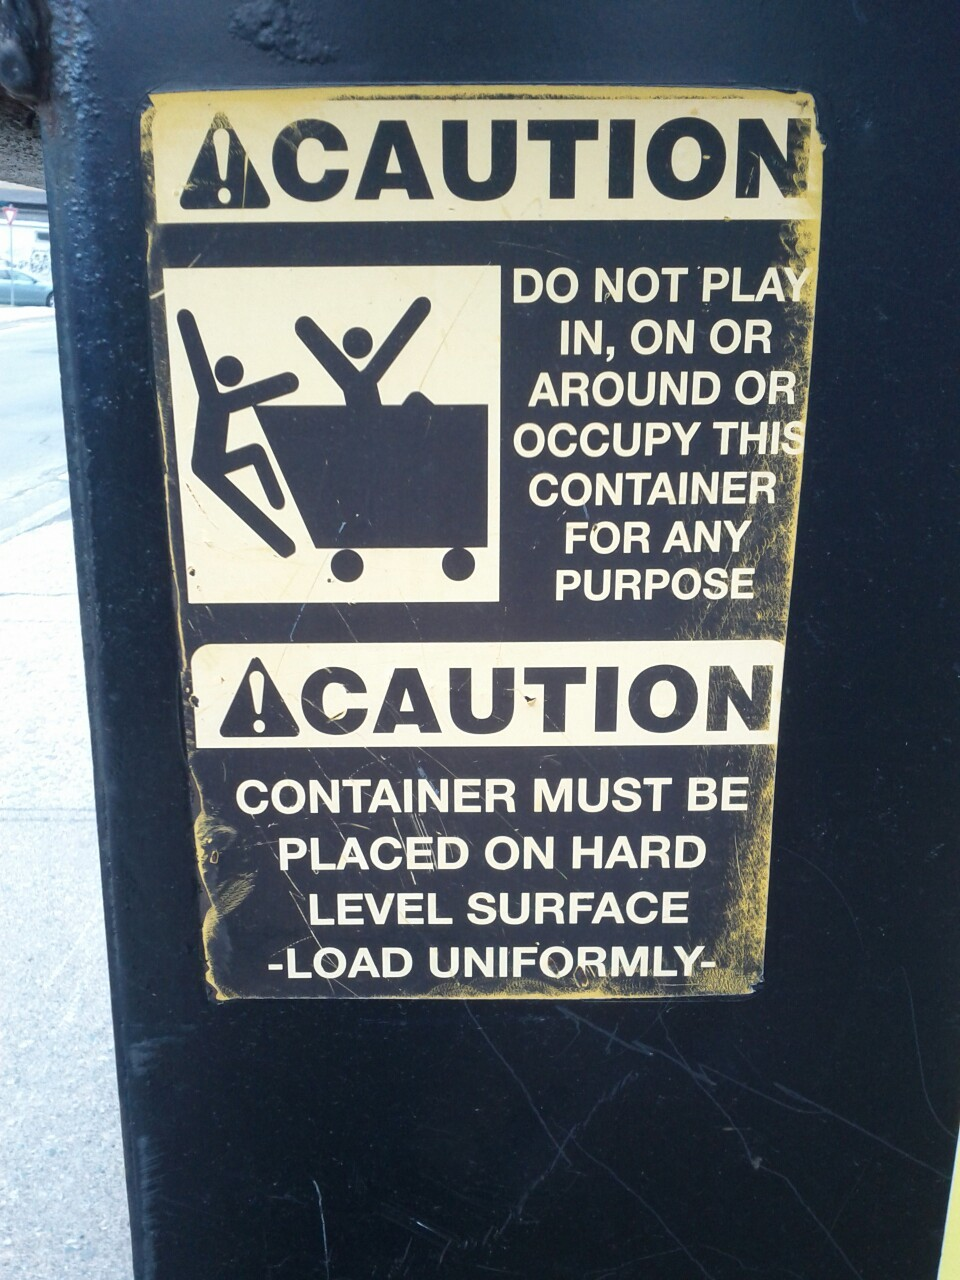 I know I'm not supposed to play in this dumpster, but those people look like they're having a REALLY good time.